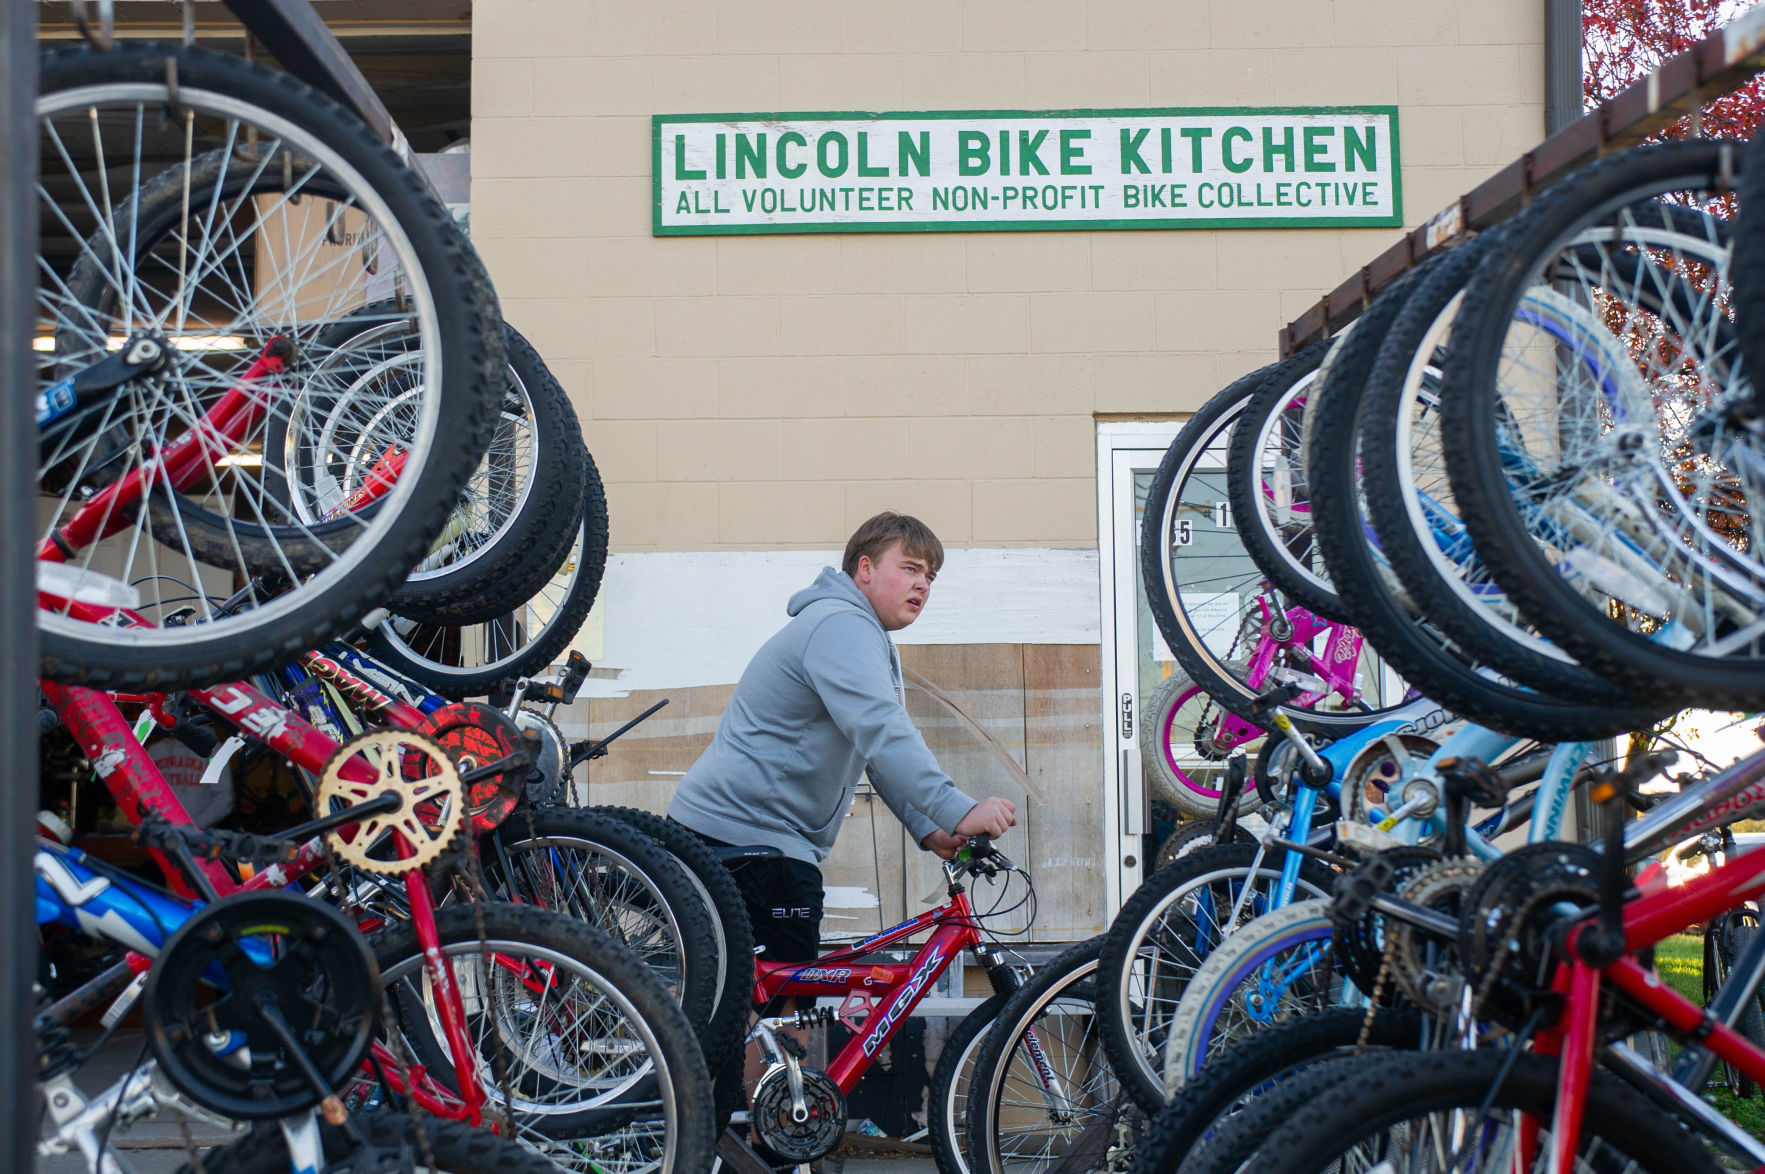 Garage Journal Bike Storage Wanted 150 Good Used Bicycles To Give To Lincoln Kids Families